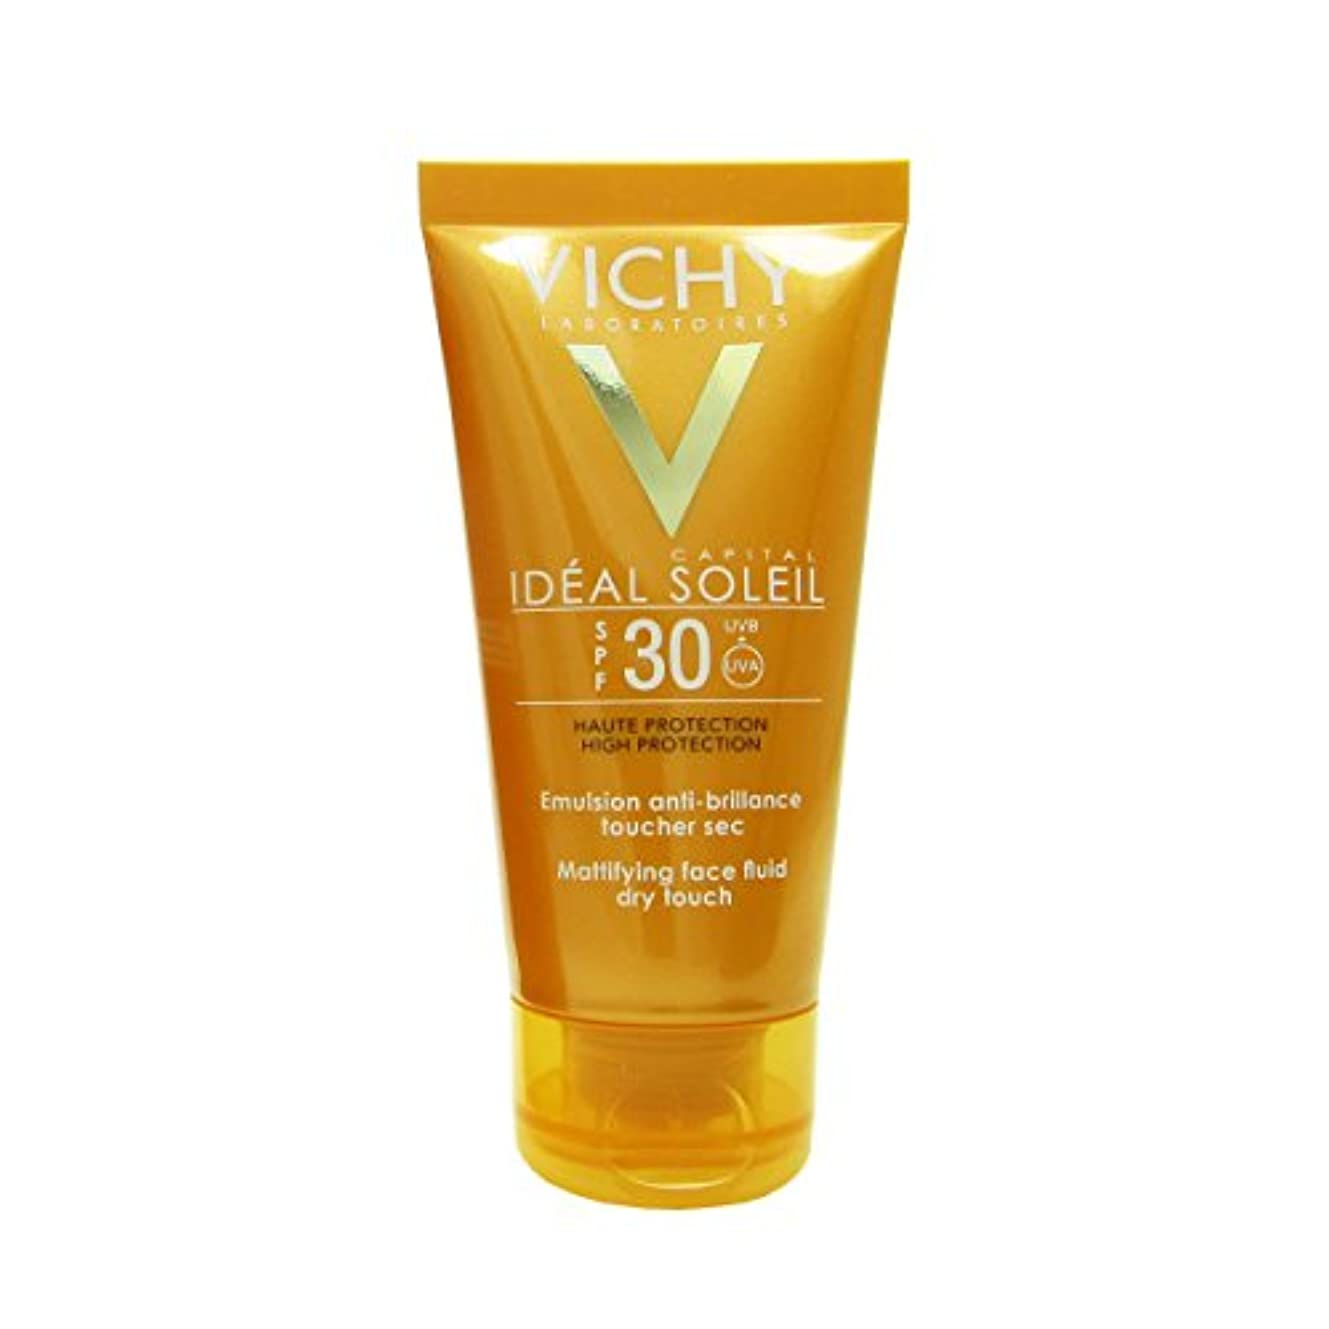 窓を洗うミニチュア大使館Vichy Capital Soleil Ideal Soleil Spf30 Dry Touch Fluid 50ml [並行輸入品]